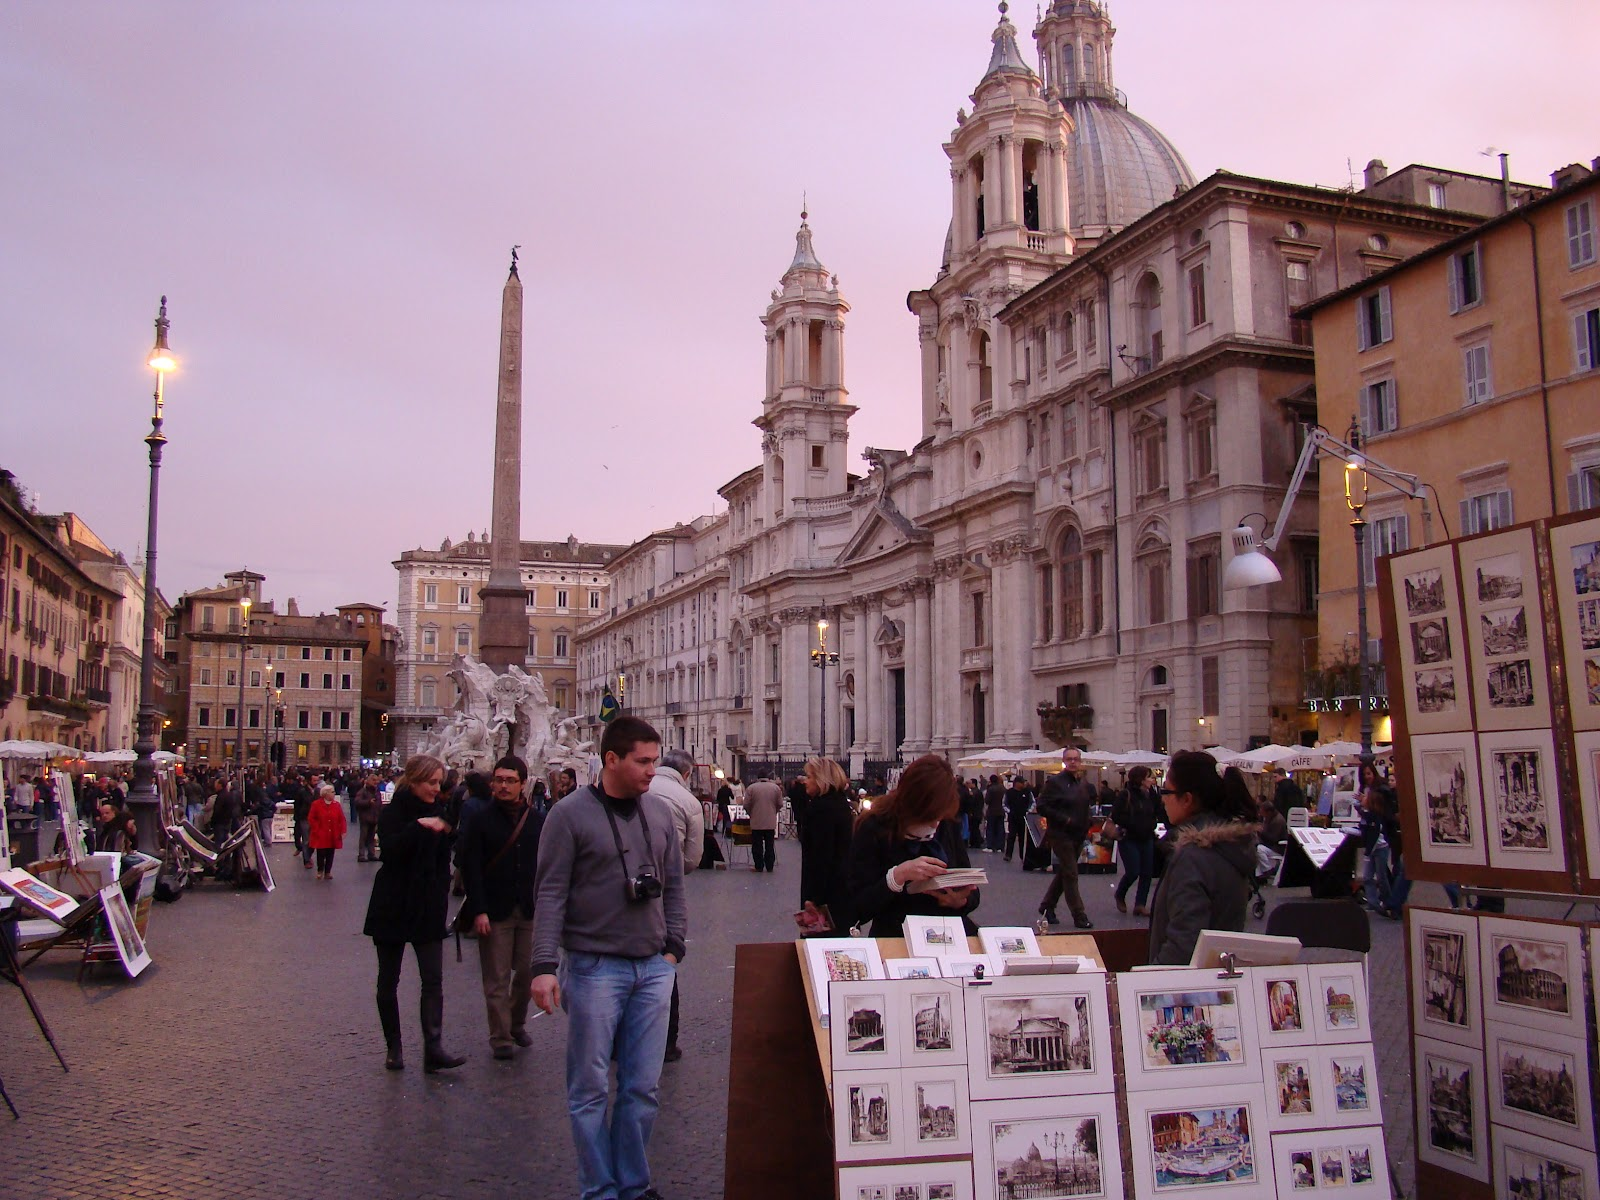 rome images downtown - photo#40